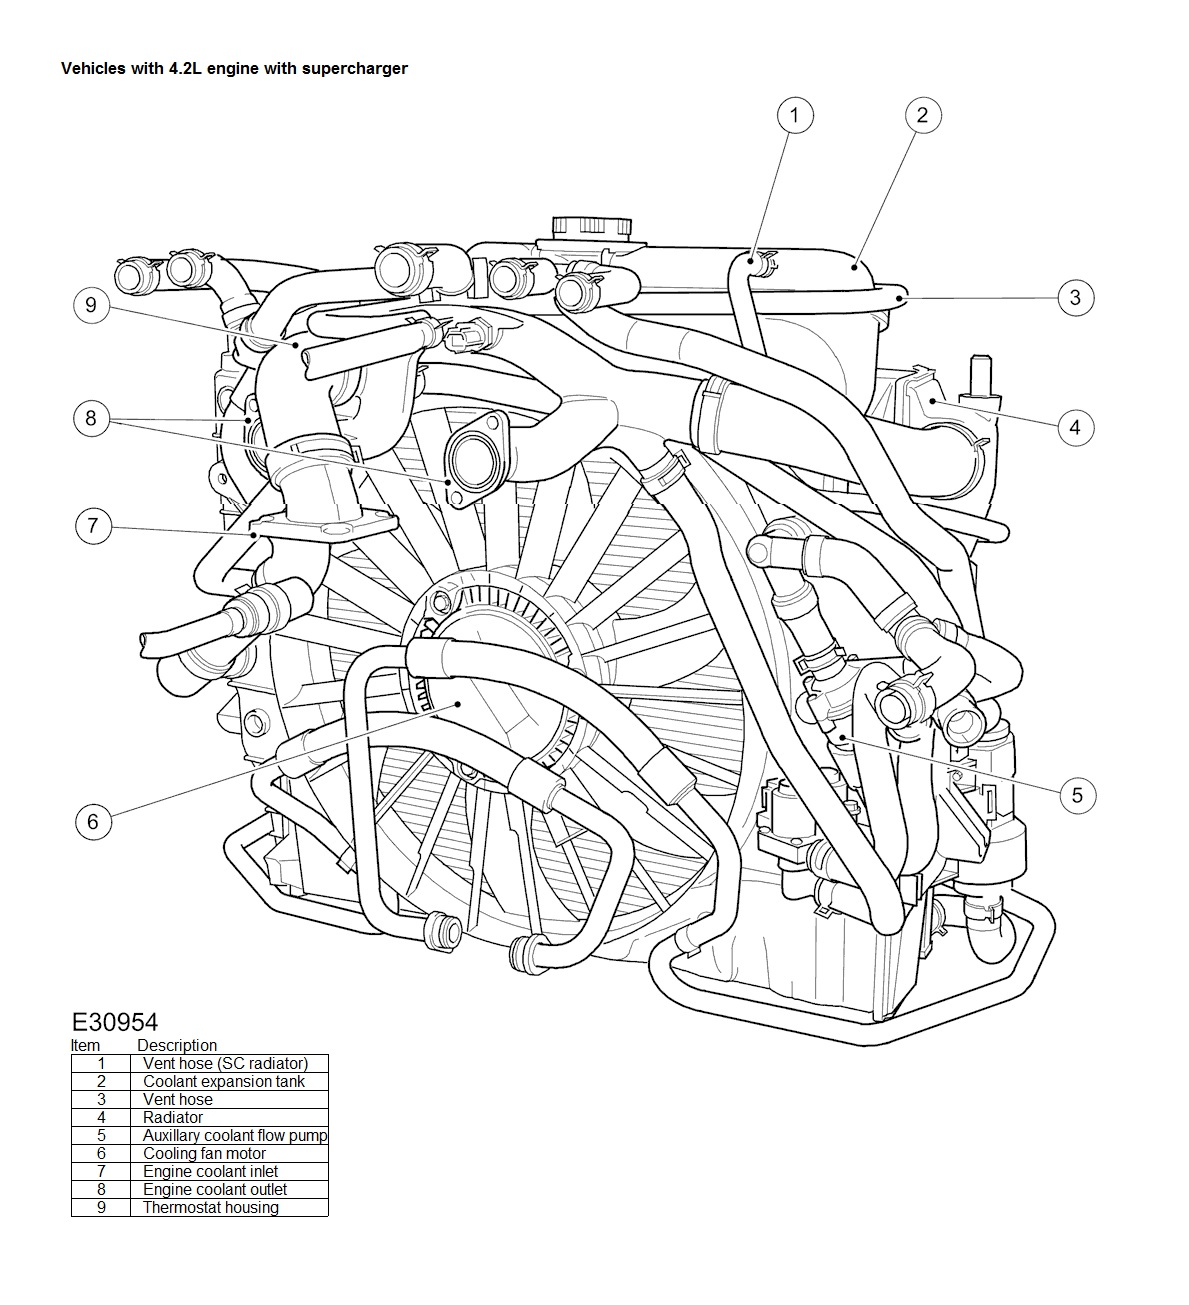 hight resolution of coolant hose under the supercharger jaguar forums jaguar coolant hose under the supercharger s type cooling